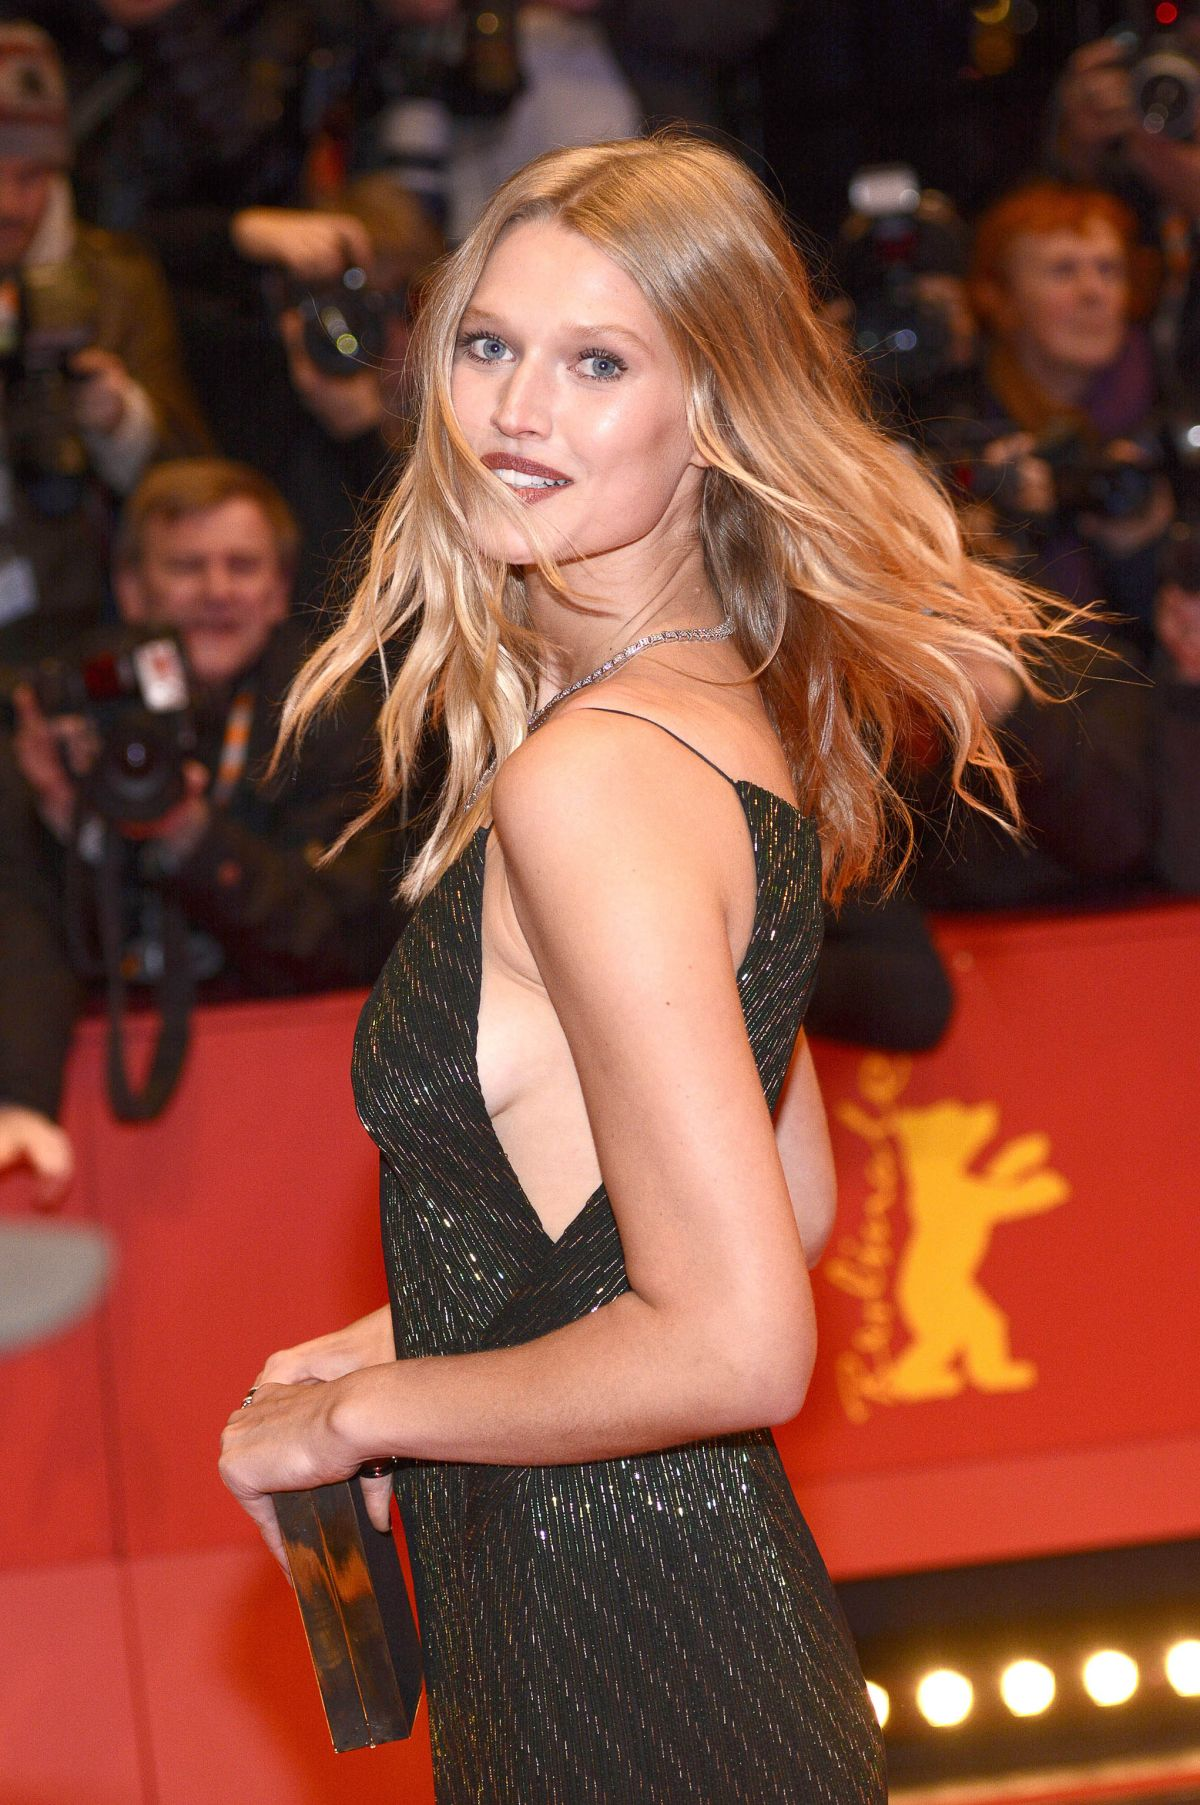 TONI GARRN at Hail, Caesar! Premiere in Berlin 02/11/2016